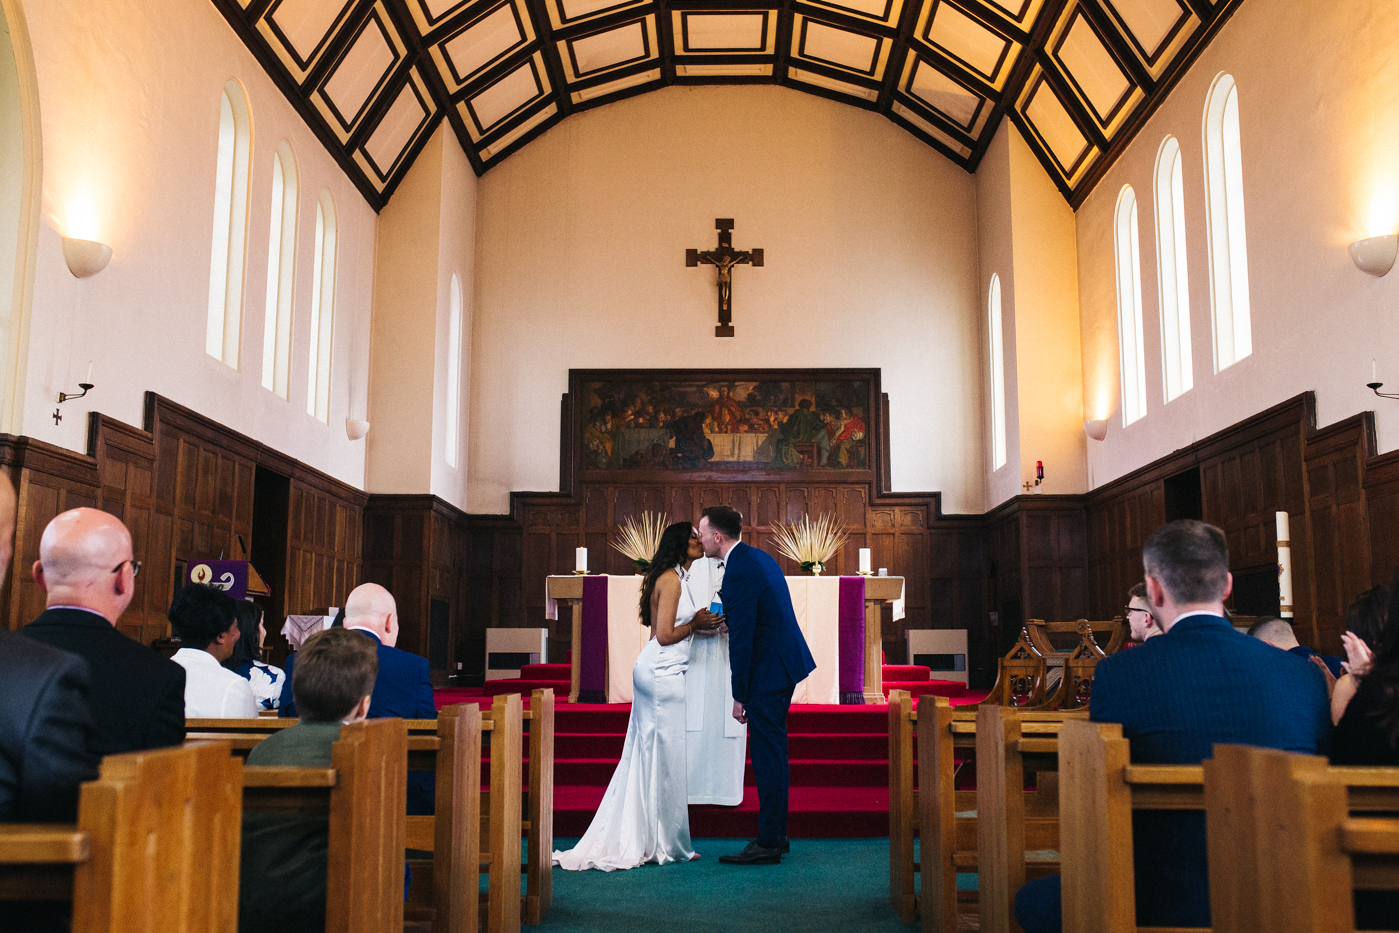 the bride and groom stand together during the ceremony. relaxed teesside middlesbrough wedding photographer, wedding at home